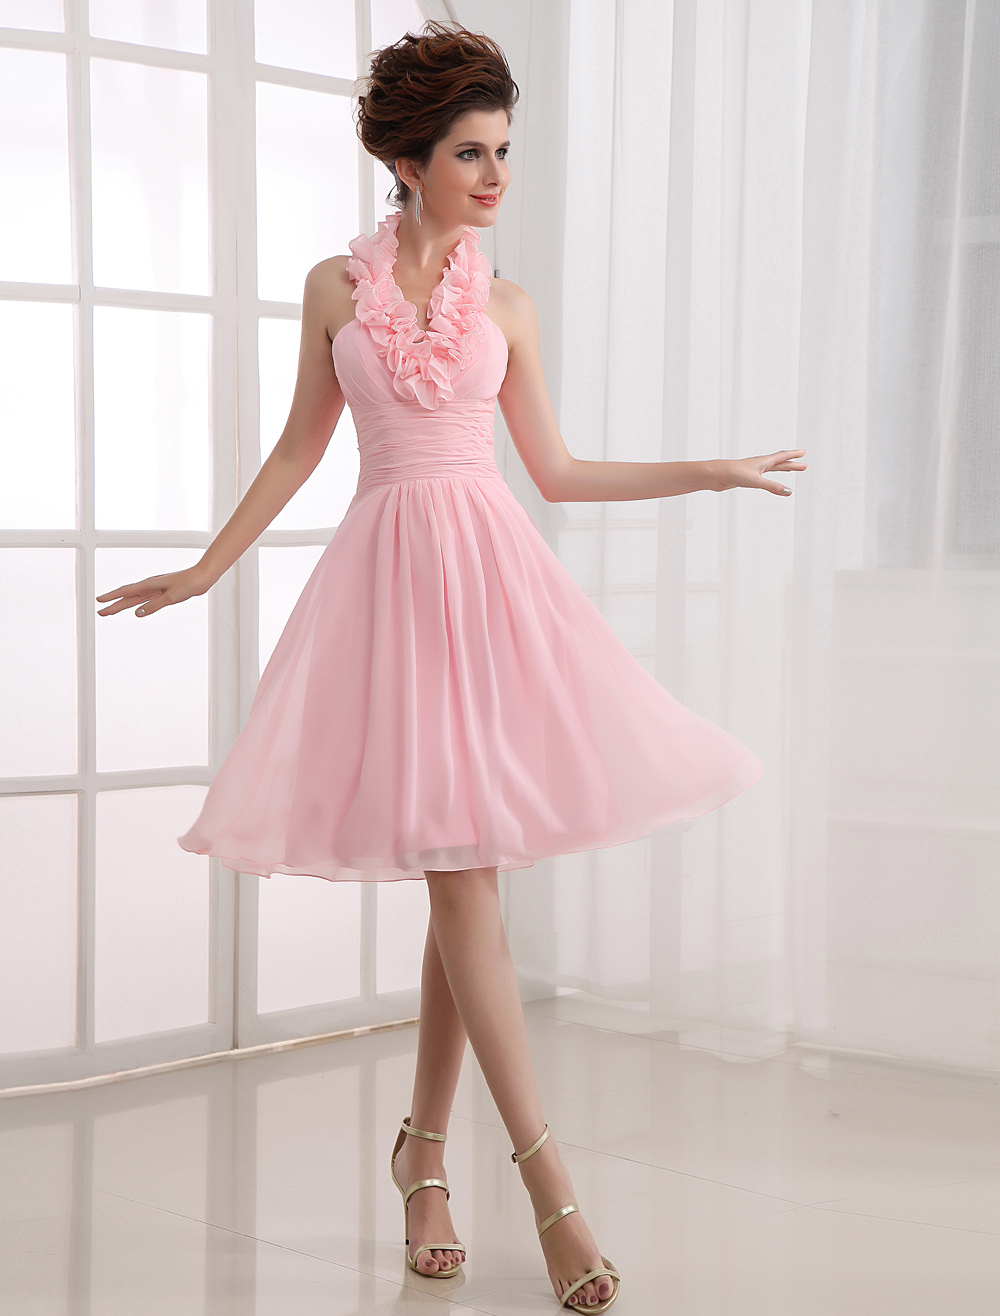 Short Pink Bridesmaid Dress Halter Neck - Milanoo.com